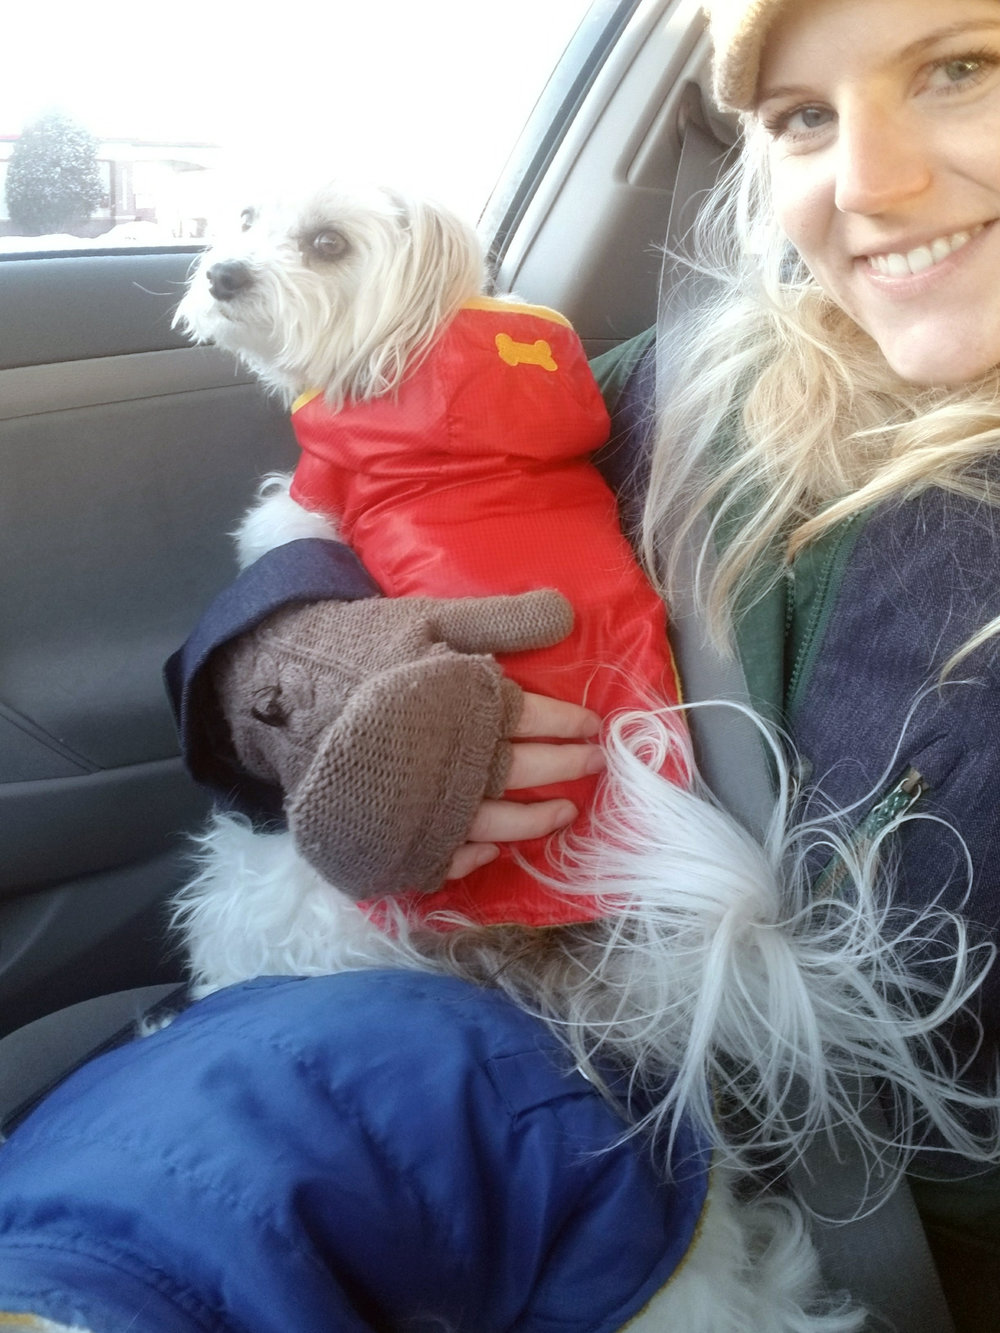 The puppies get so cold in the winter that when we take them for walks they have to wear coats. Here I am waiting with the dogs as my mom runs into the store. We took the dogs to the dog park that day.